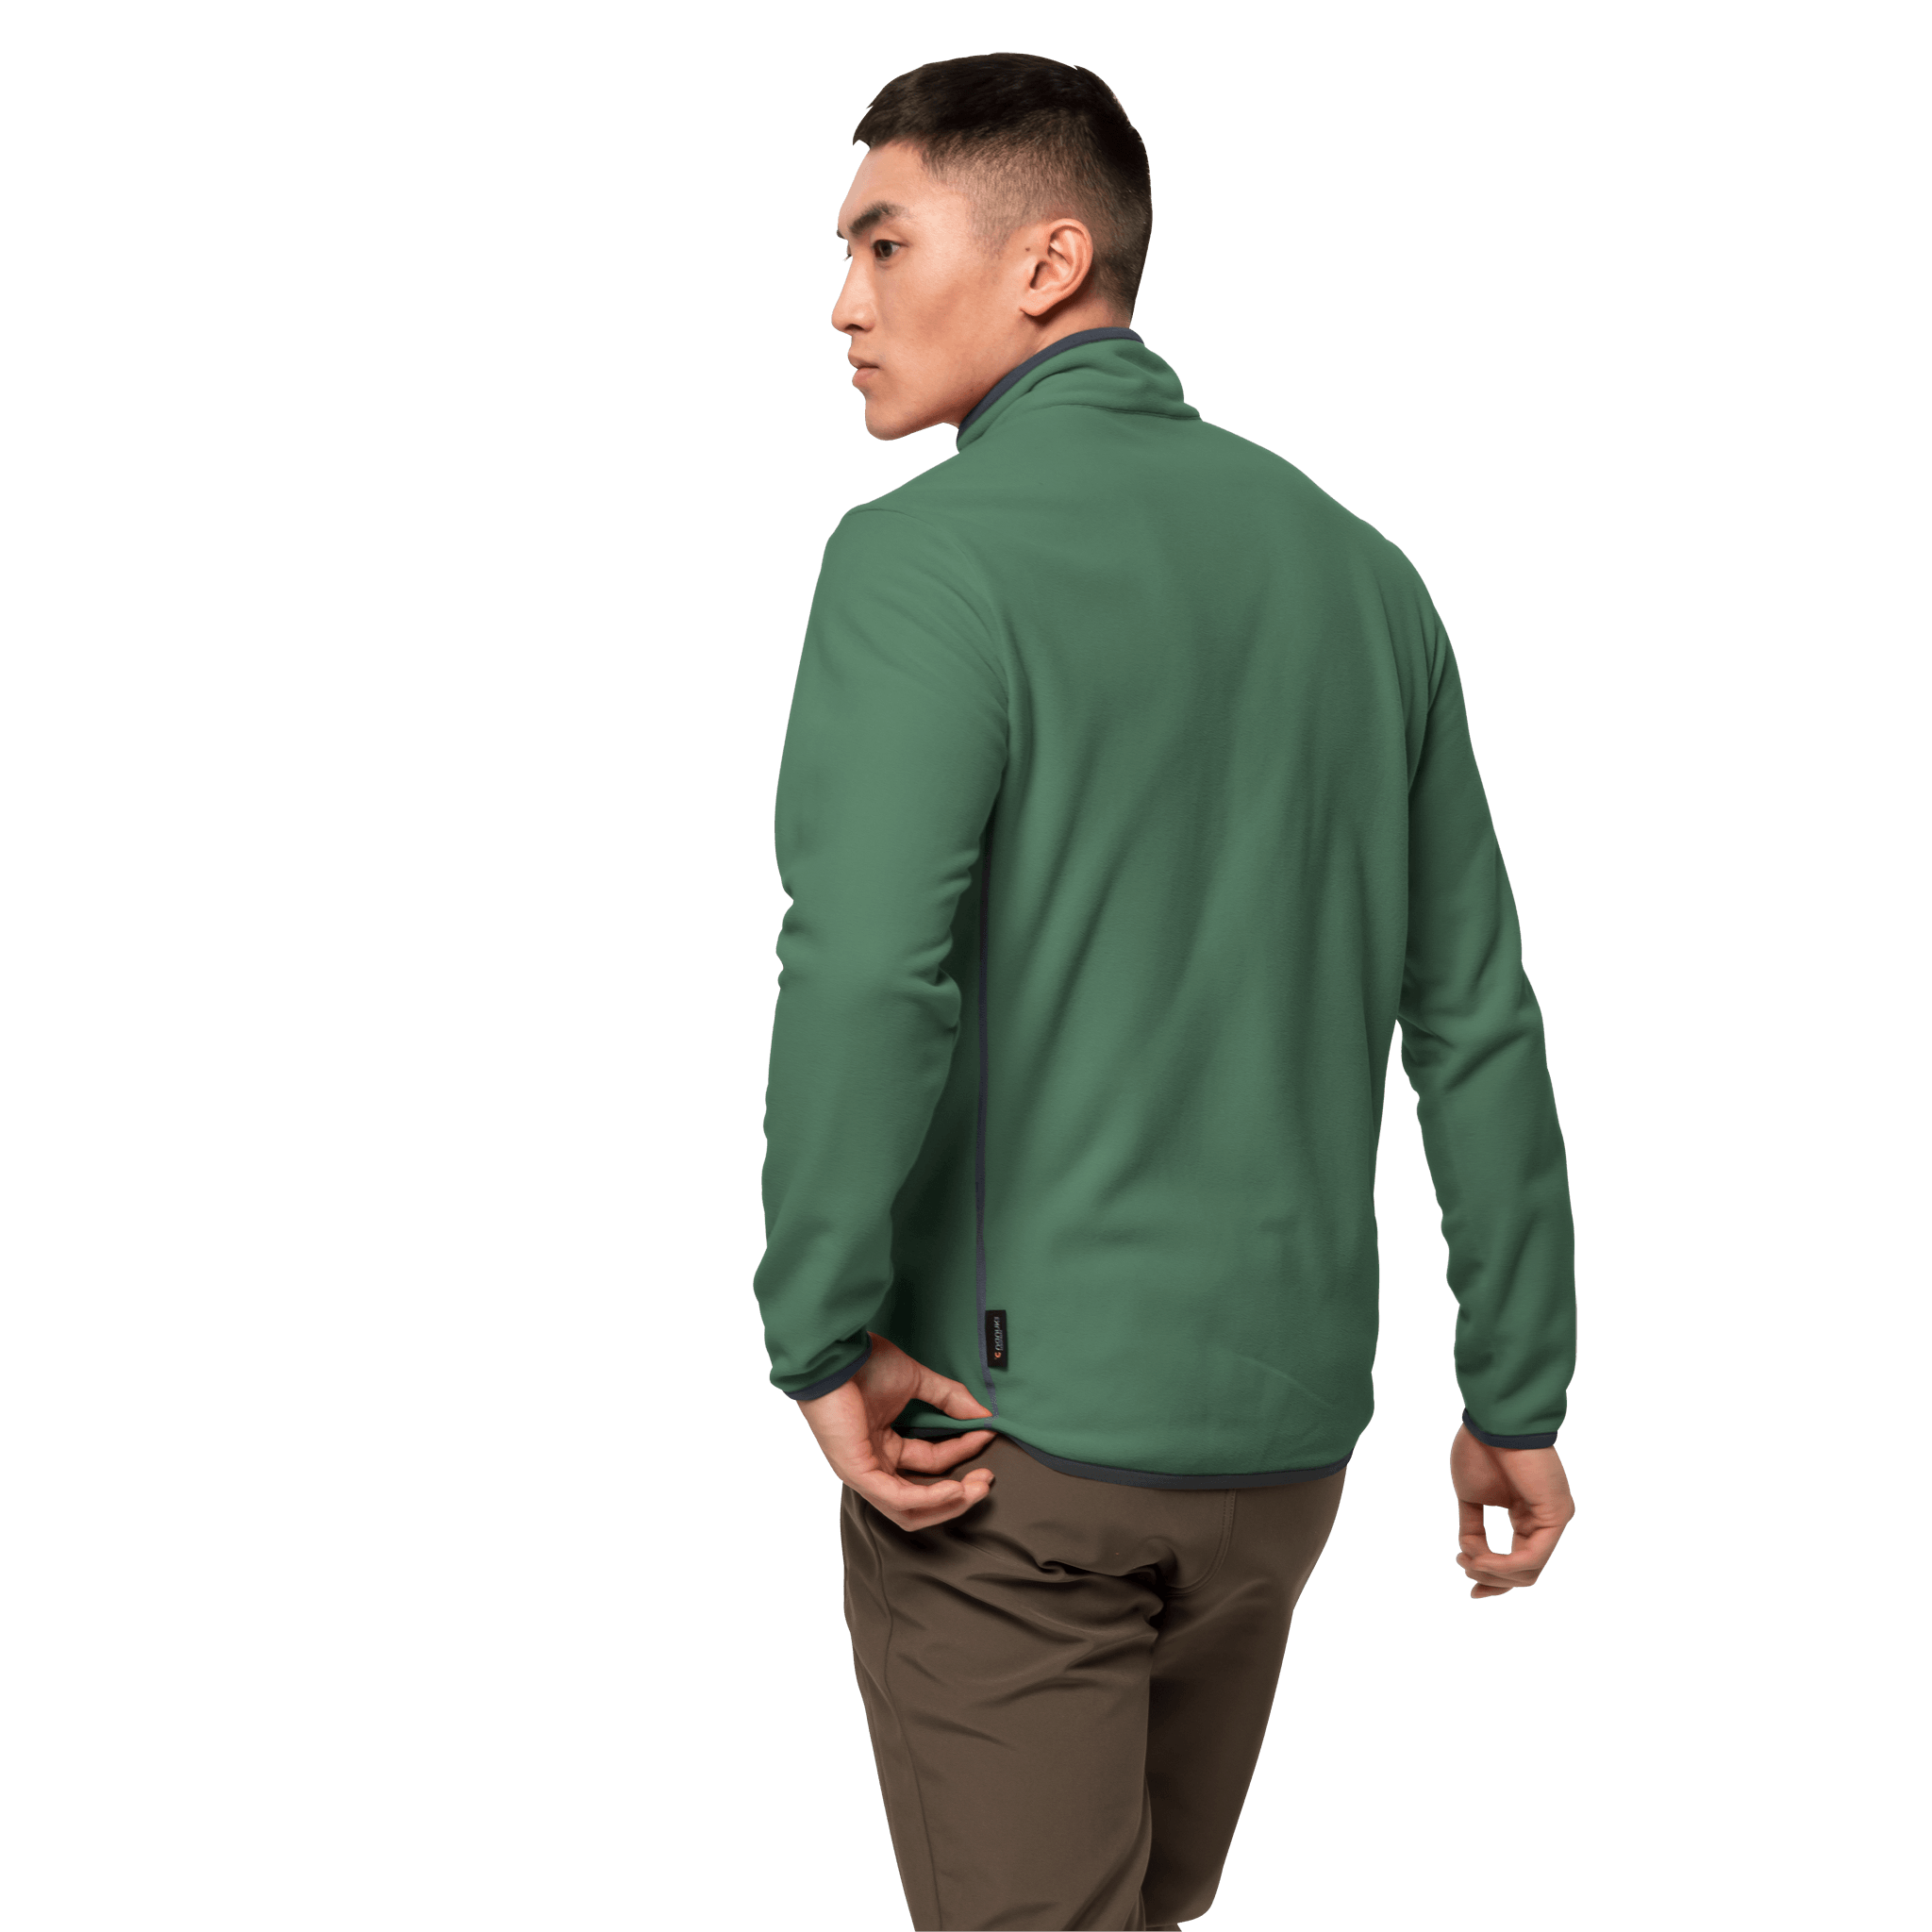 Sage Fleece Sweatshirt Men